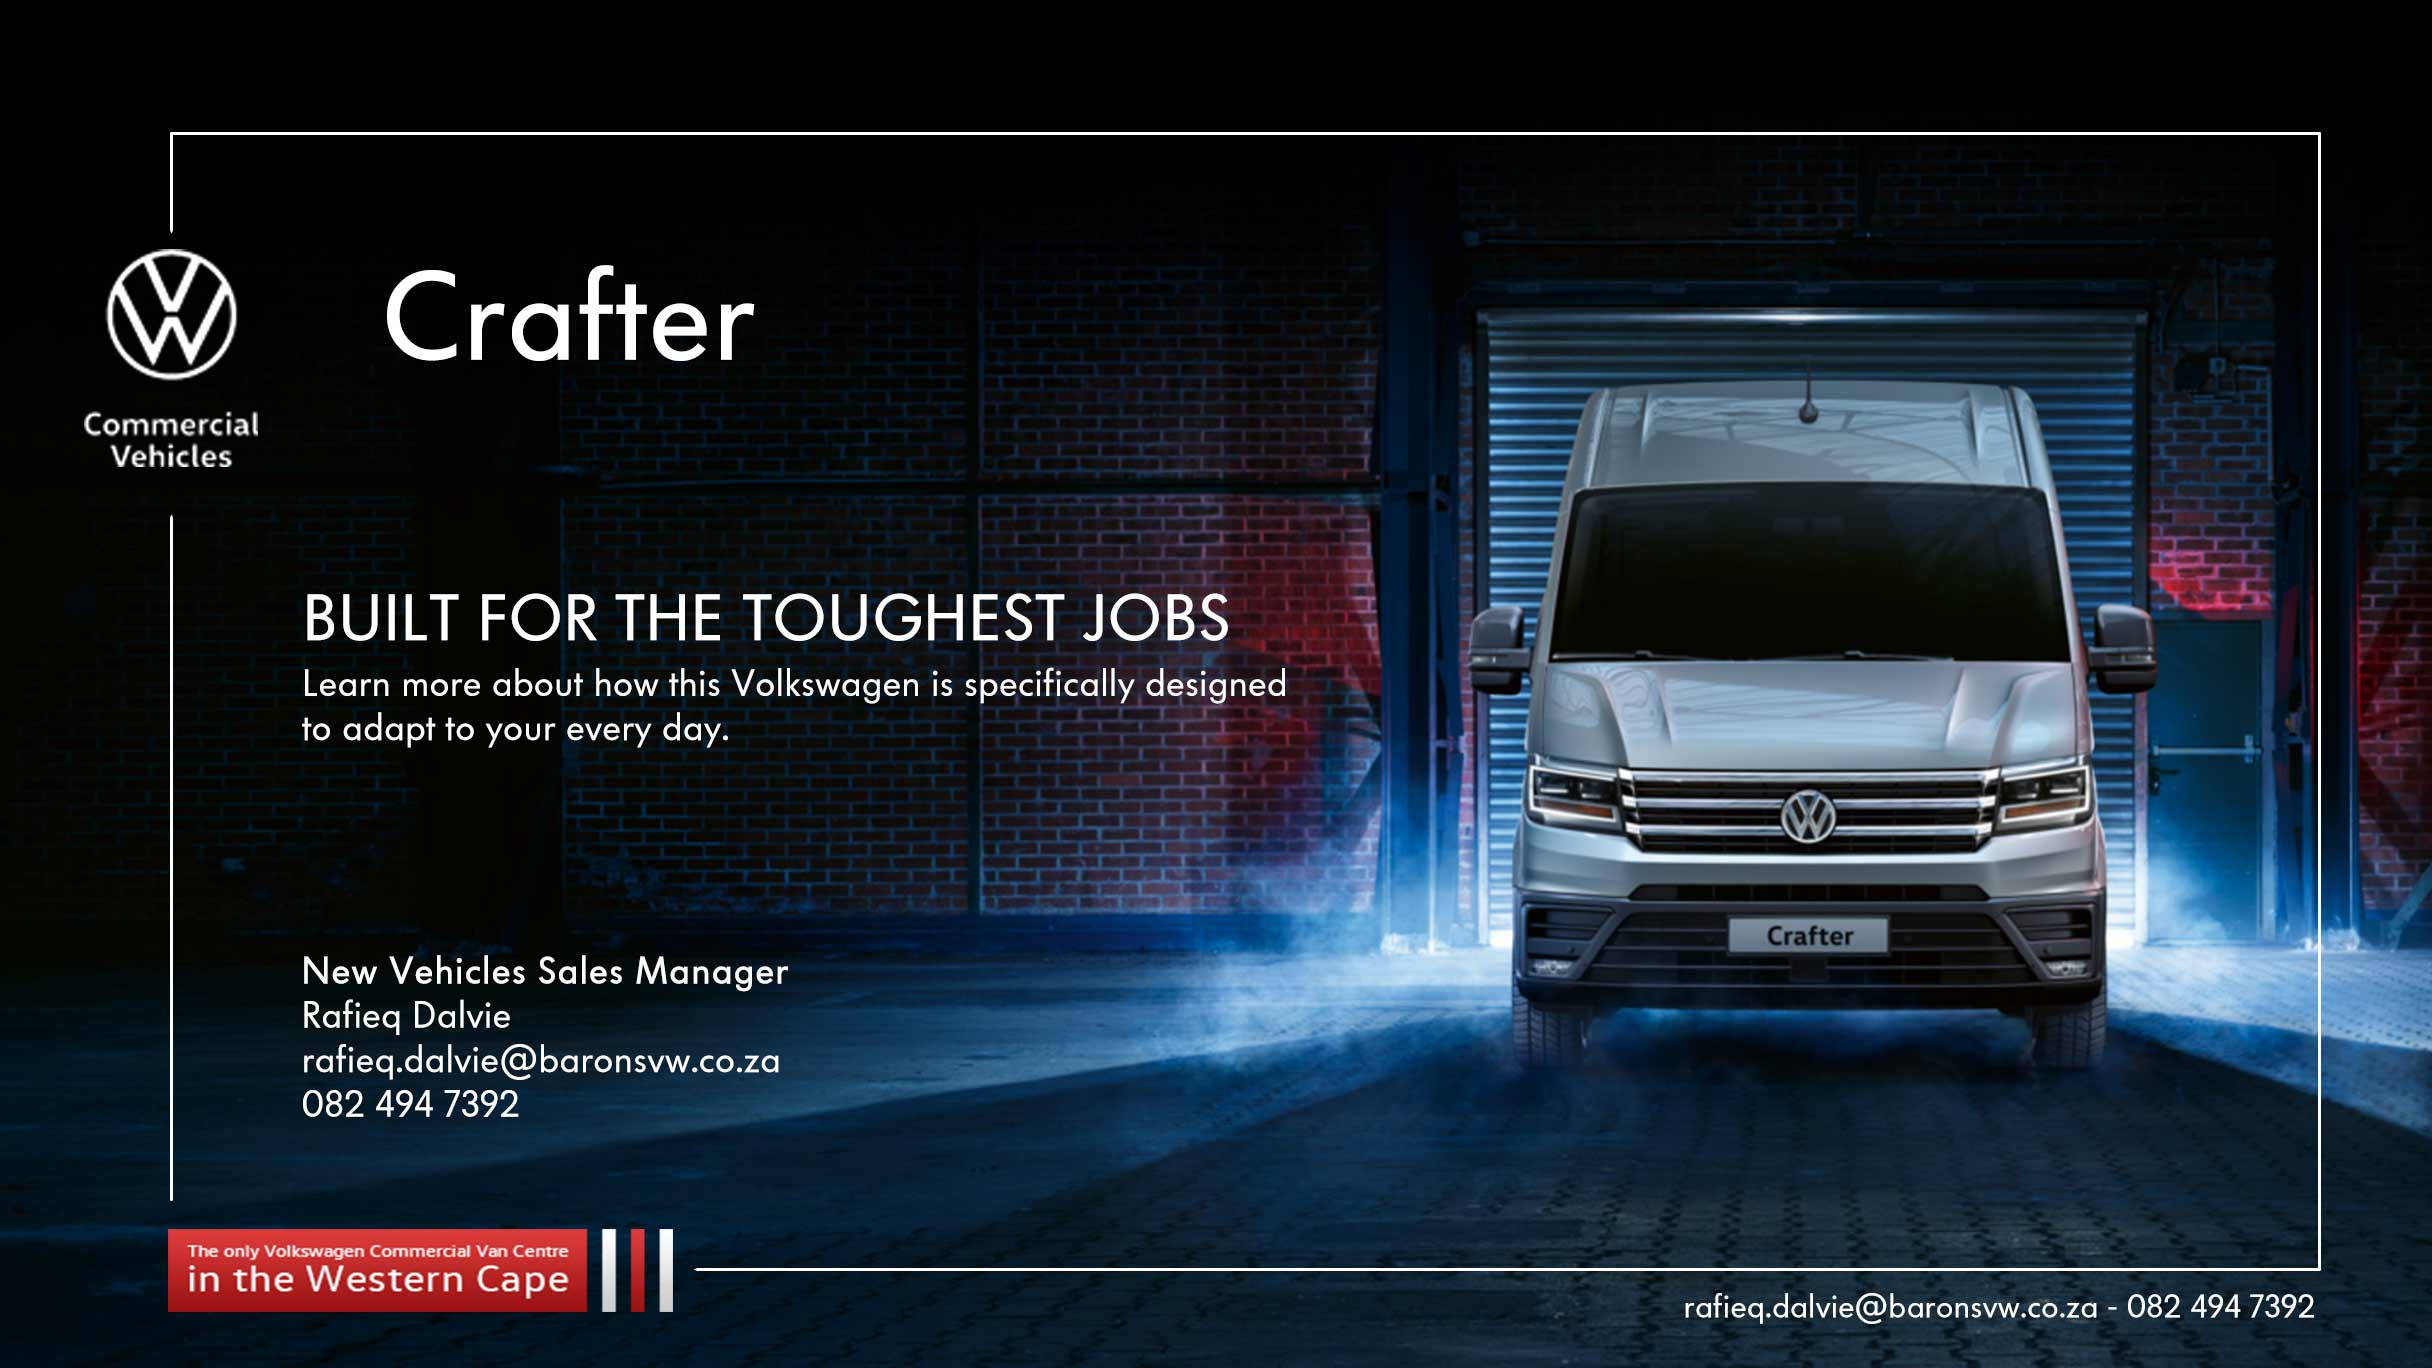 Reasons to buy the VW Crafter